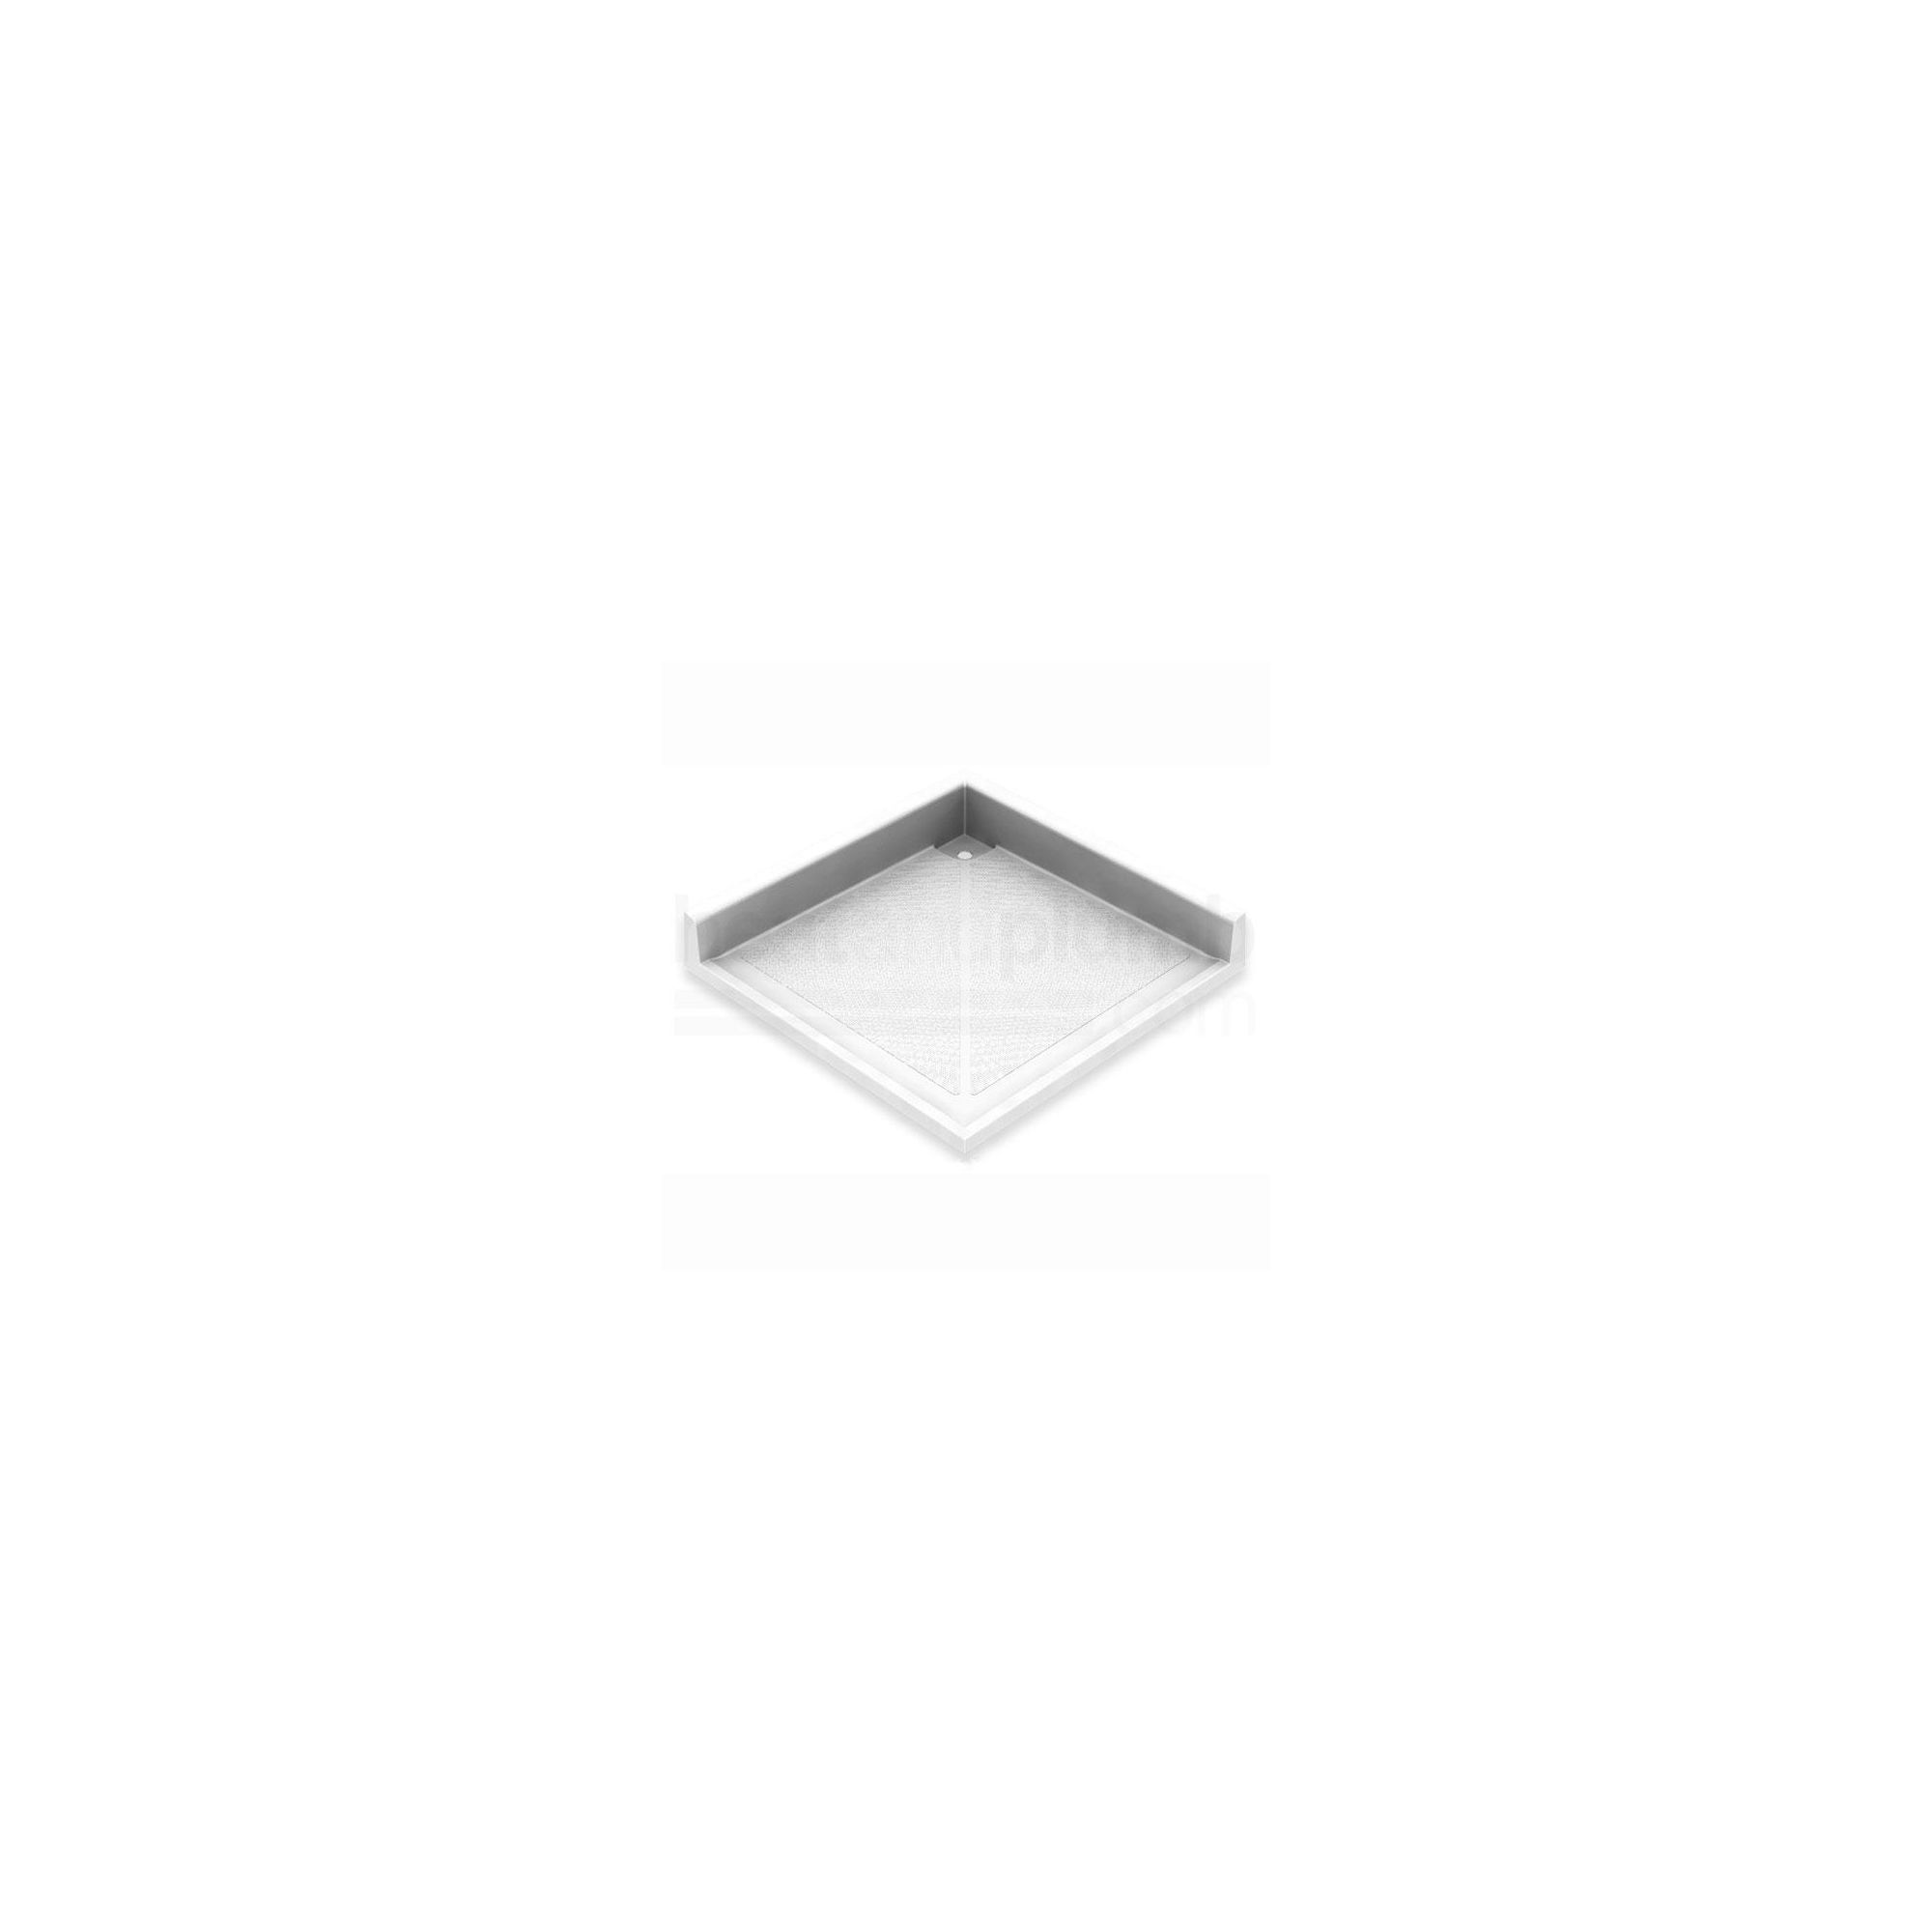 AKW Multi Spec Square Shower Tray 1050mm x 1050mm at Tesco Direct